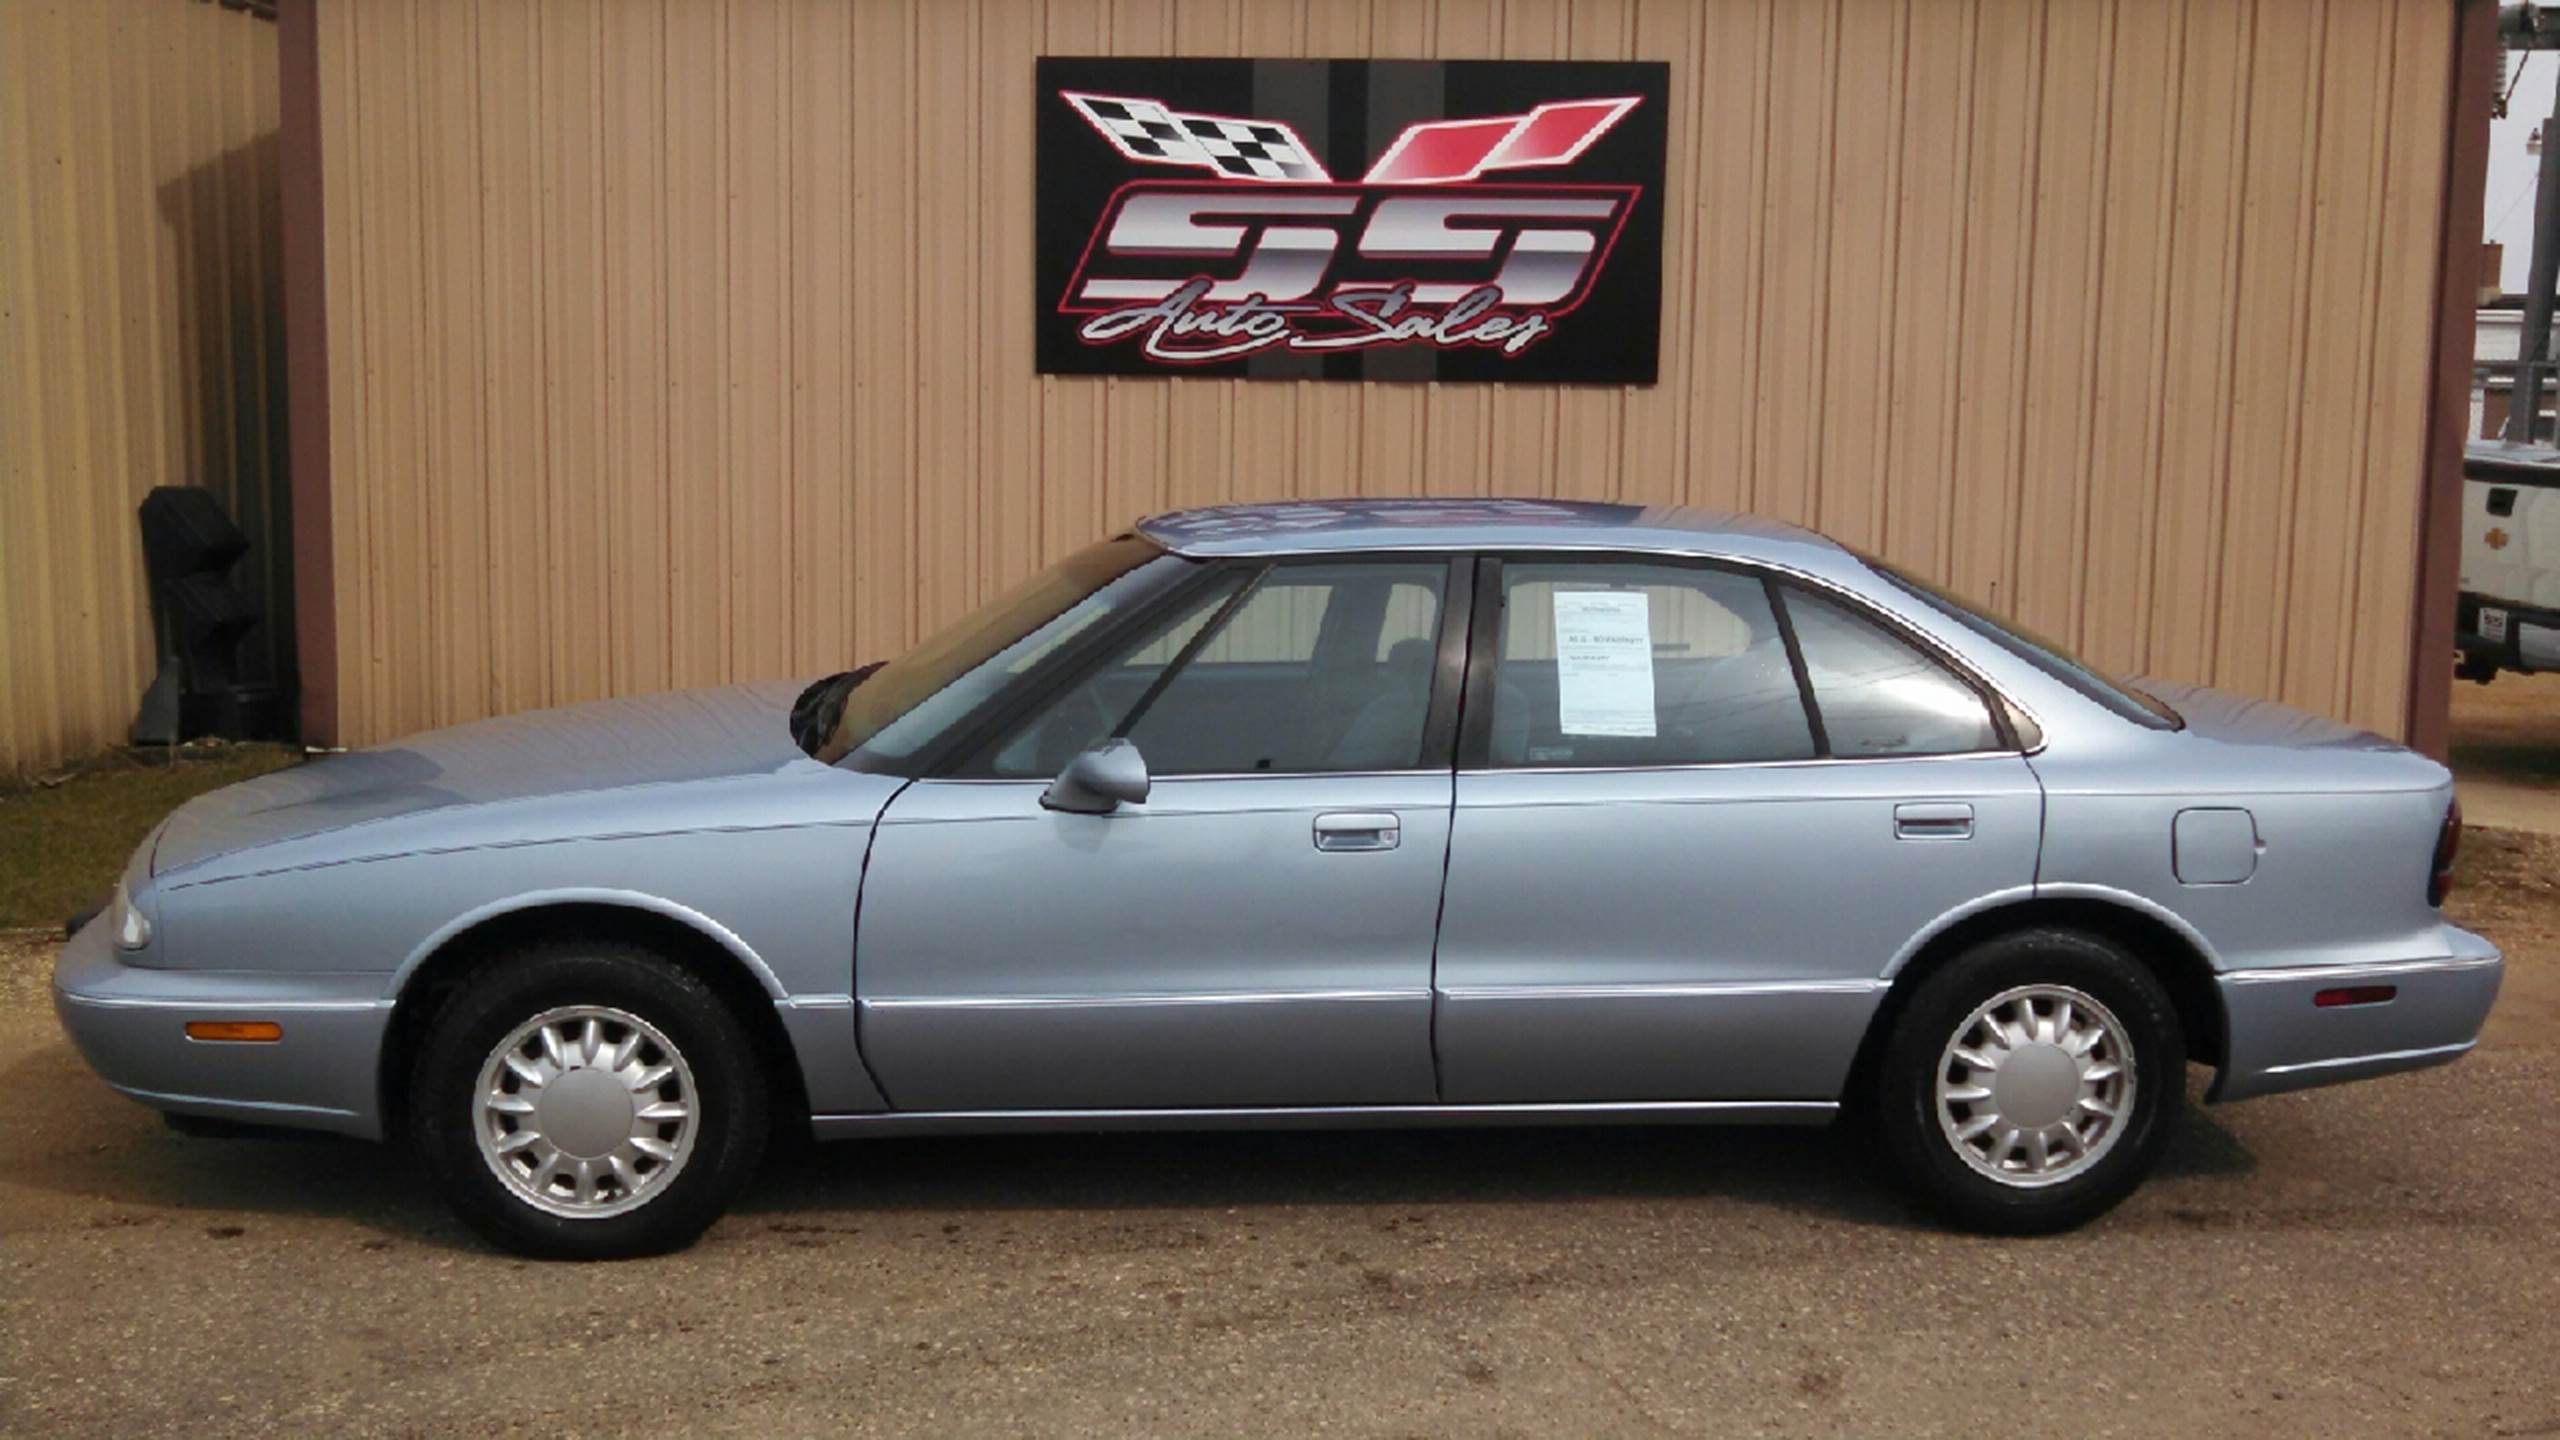 1996 Oldsmobile Eighty-Eight for sale in Estelline, SD